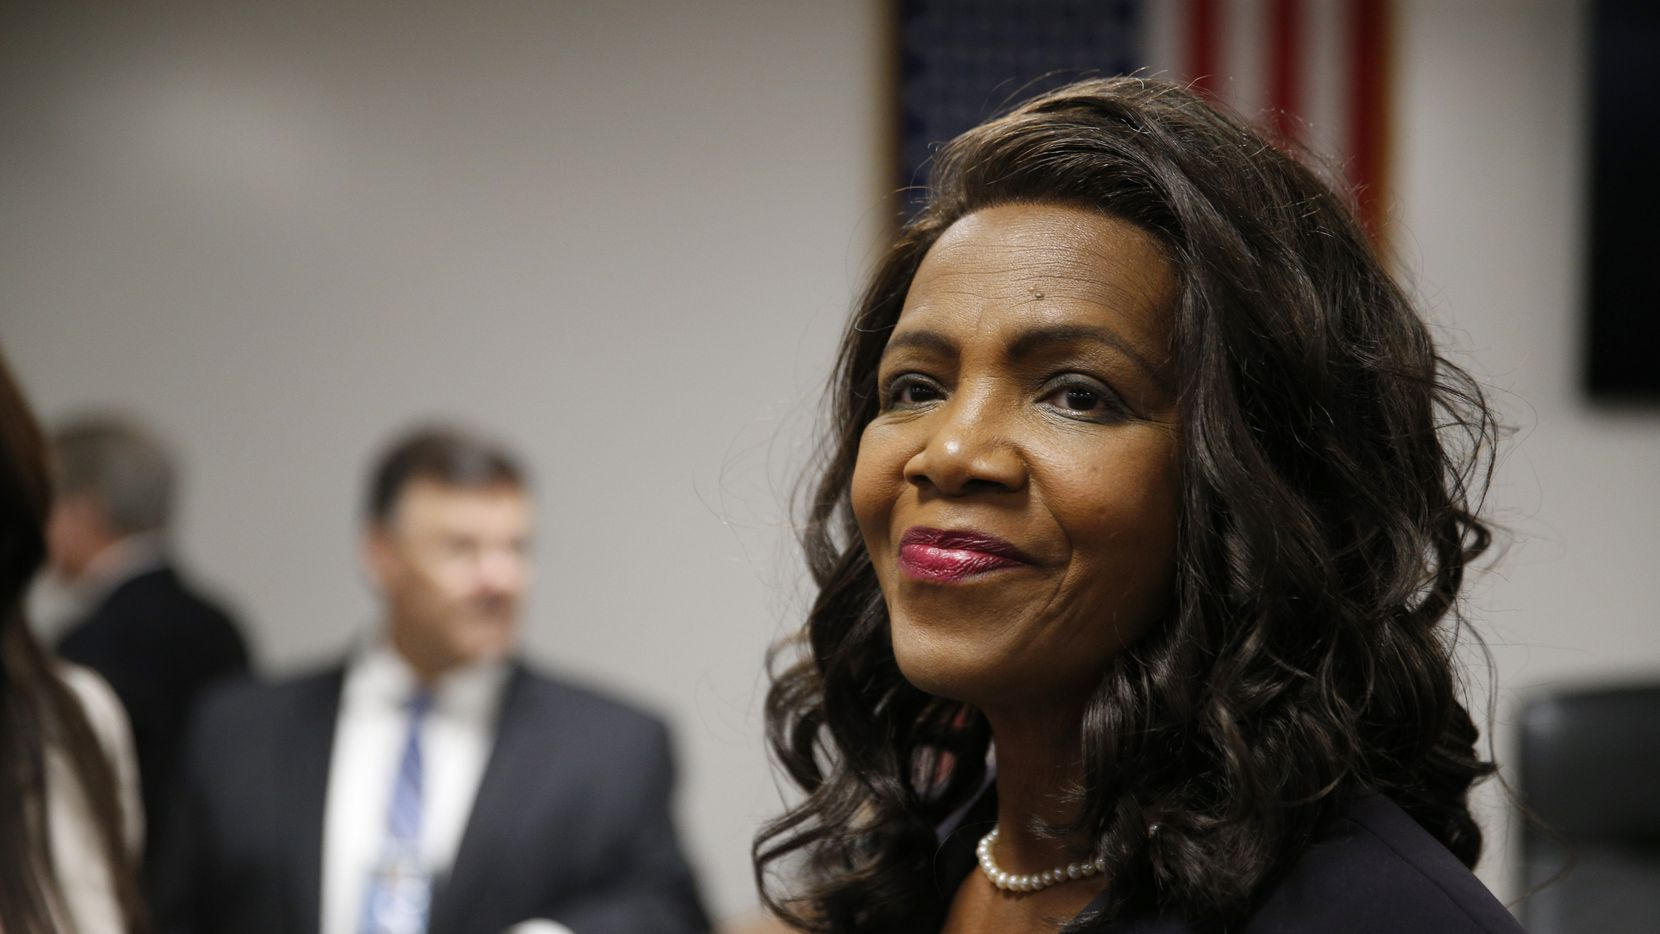 The Honorable Faith Johnson before being sworn in at the Dallas County District Attorney at the Frank Crowley Courts Building in Dallas on January 2, 2017.  (Nathan Hunsinger/The Dallas Morning News)